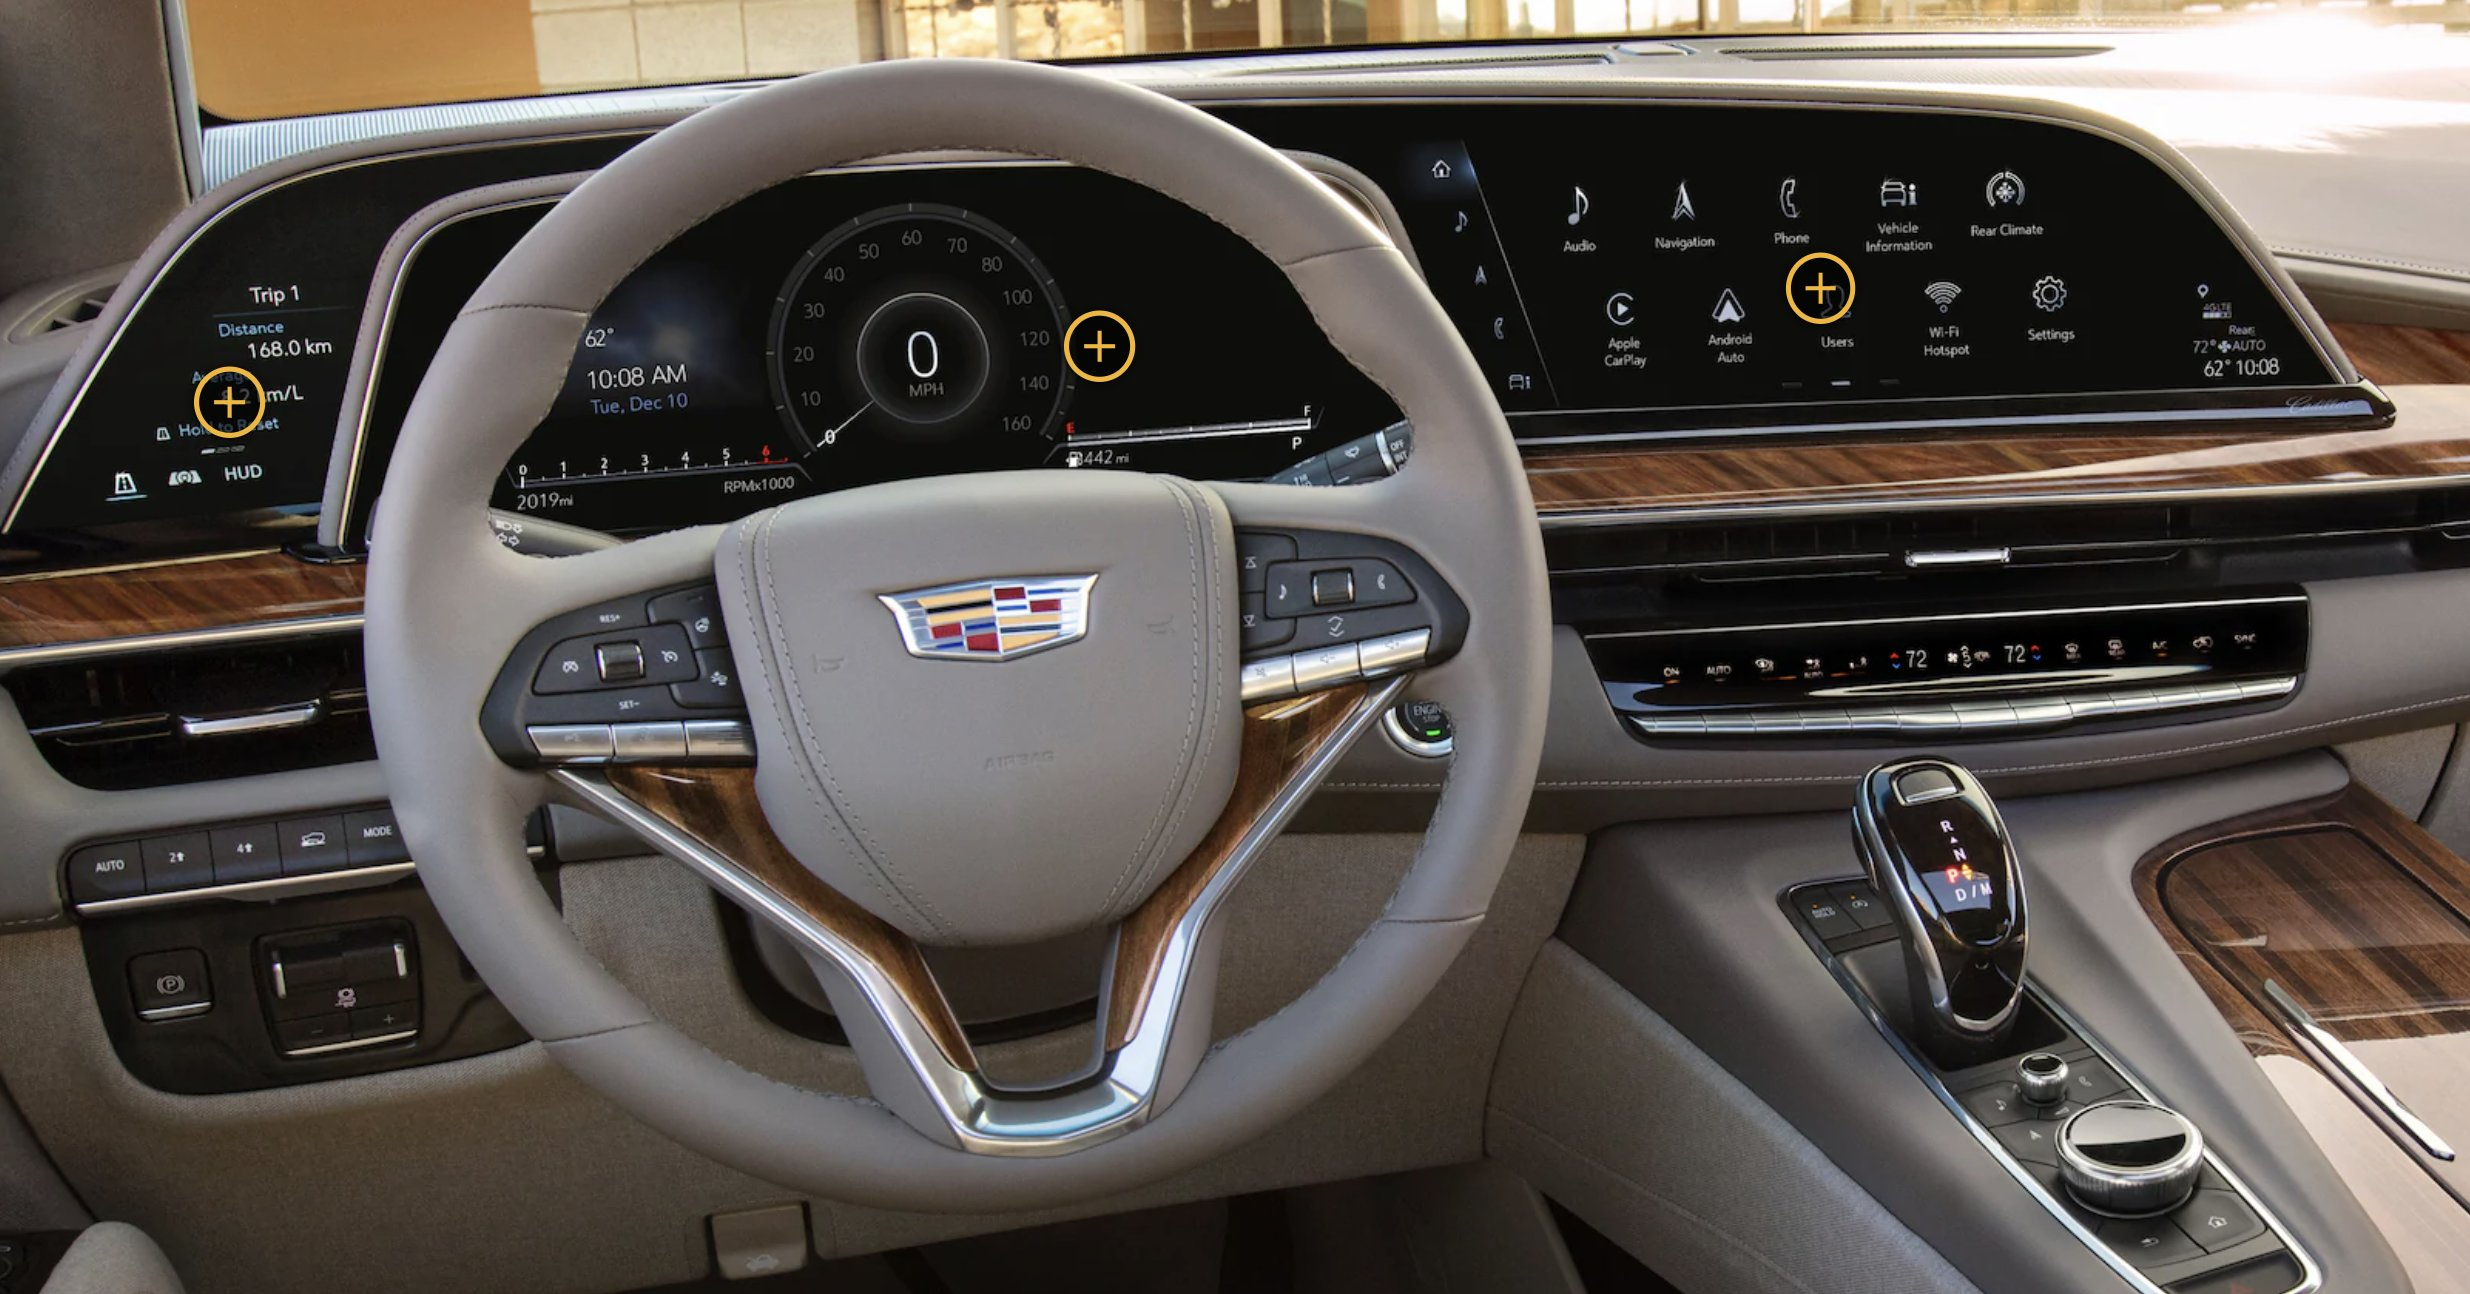 Review: The 2021 Cadillac Escalade – Everything a Tesla Isn't